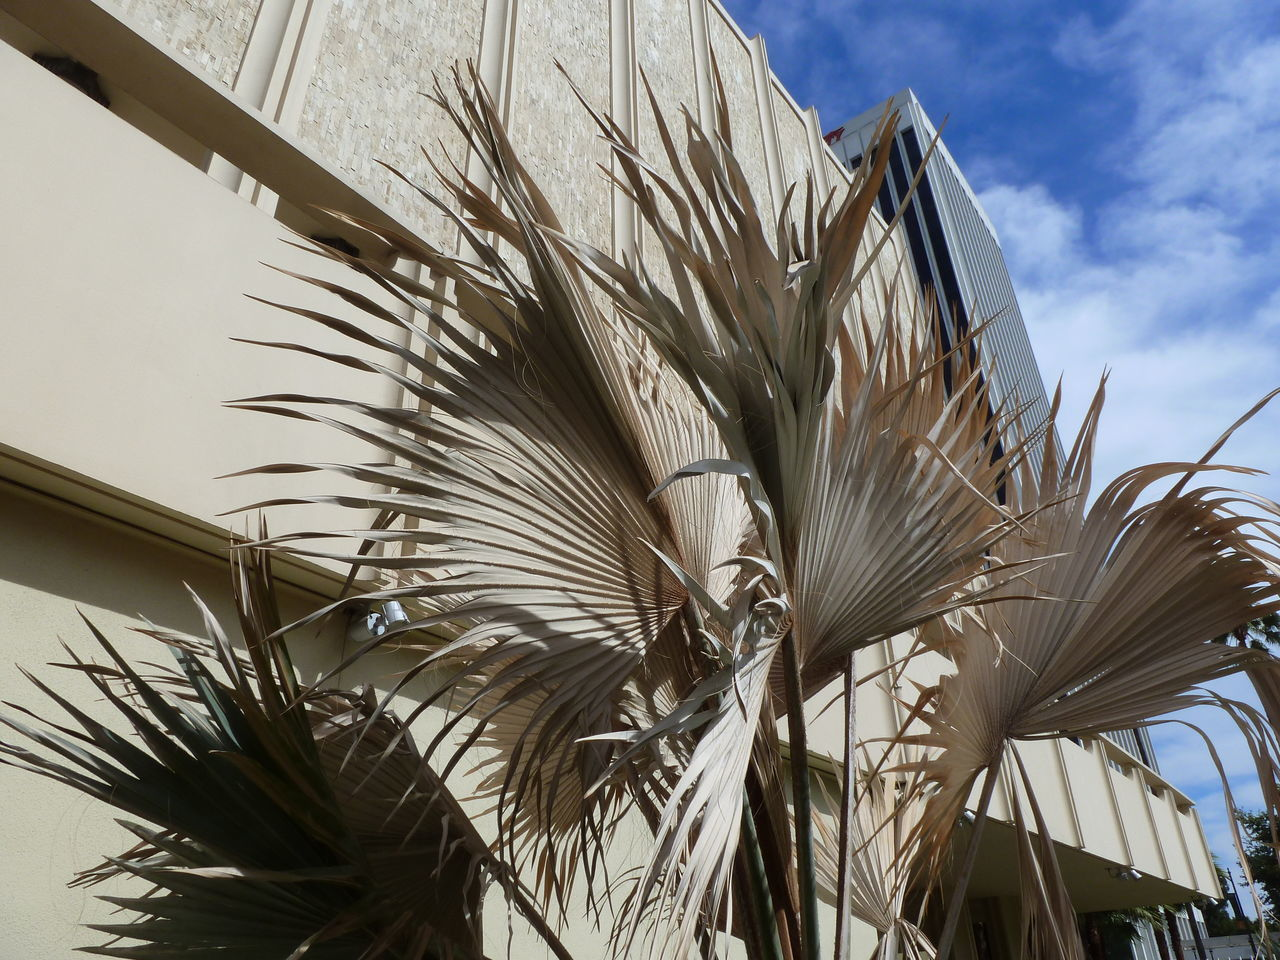 low angle view, sky, palm tree, day, no people, outdoors, nature, tree, growth, plant, close-up, beauty in nature